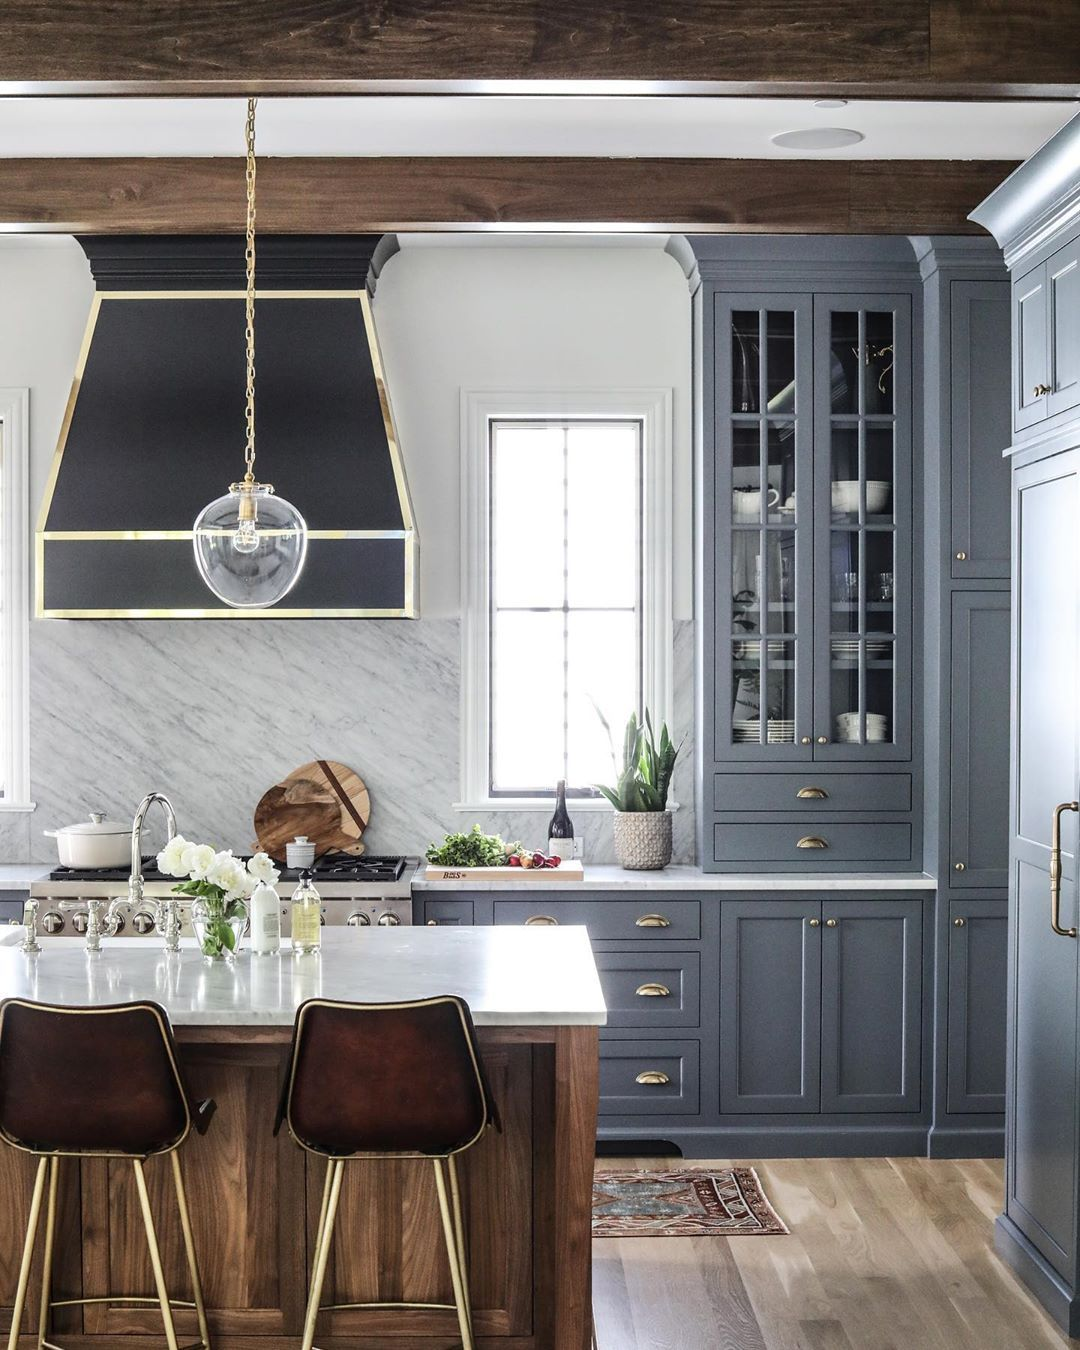 Park Oak On Instagram Loving This Blue Gray Cabinet Color At Our Poclaussennewbuild Grey Blue Kitchen Gray Cabinet Color Blue Gray Kitchen Cabinets